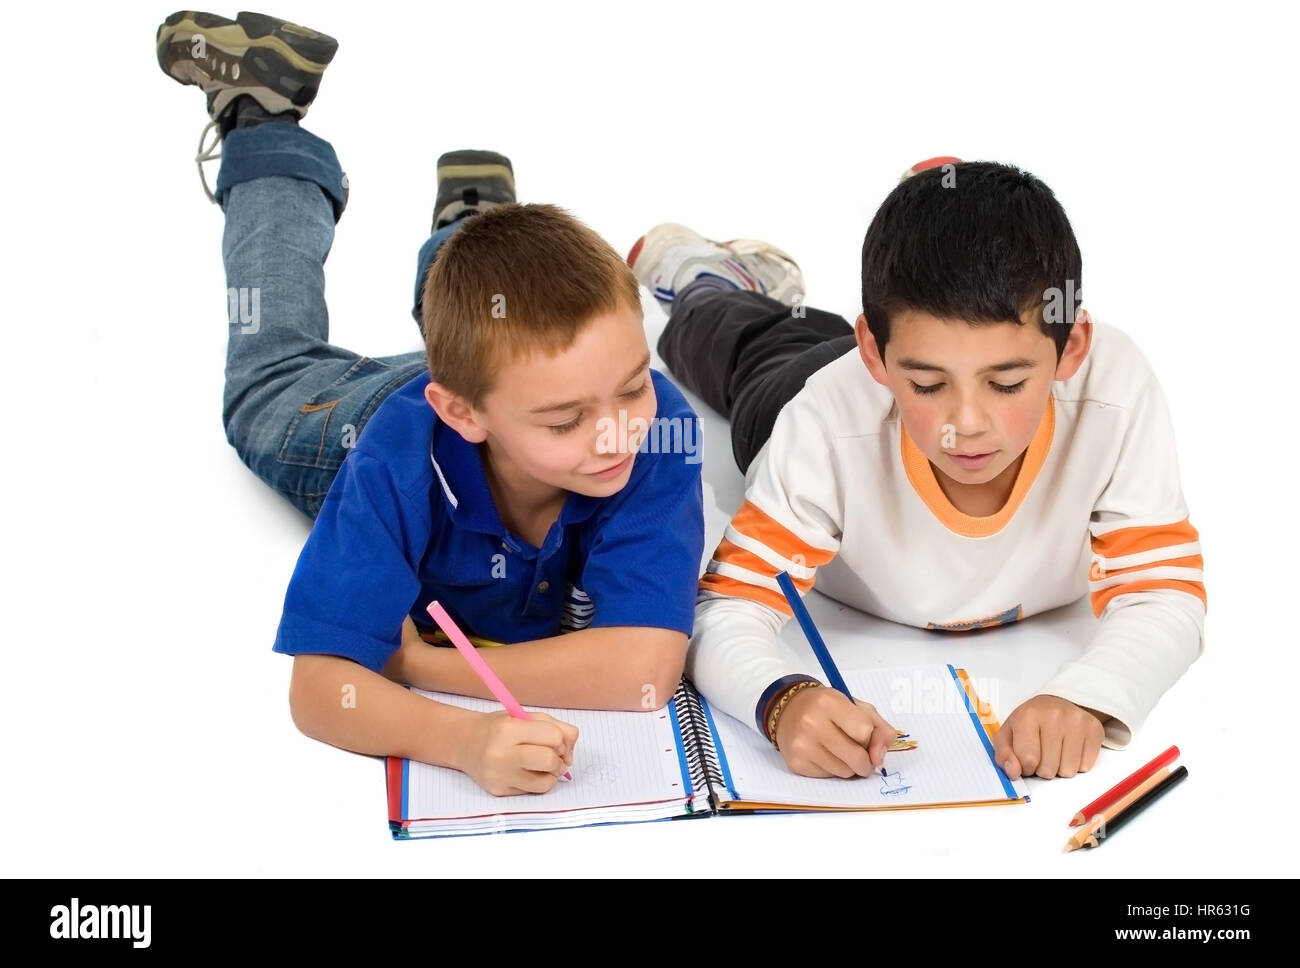 kids drawing on a notebook on the floor – isolated over a white background - Stock Image